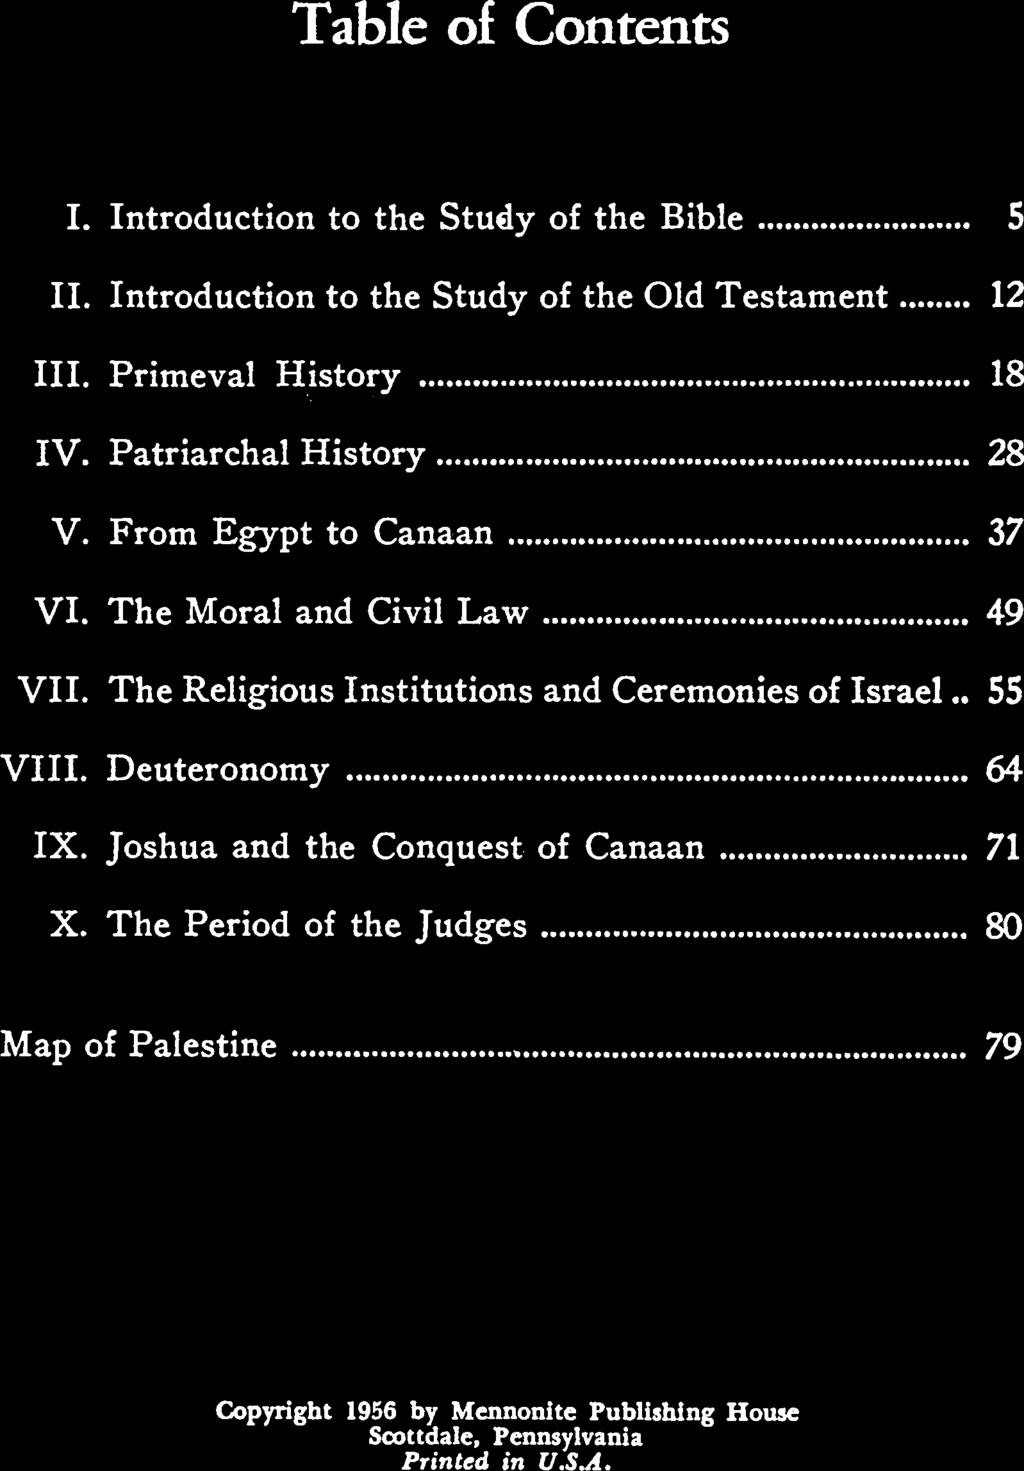 Tble of Contents I. Introduction to the Study of the Bible 5 II. Introduction to the Study of the Old Testment 12 III. Primevl History 18 IV. Ptrirchl History 28 V. From Egypt to Cnn 37 VI.